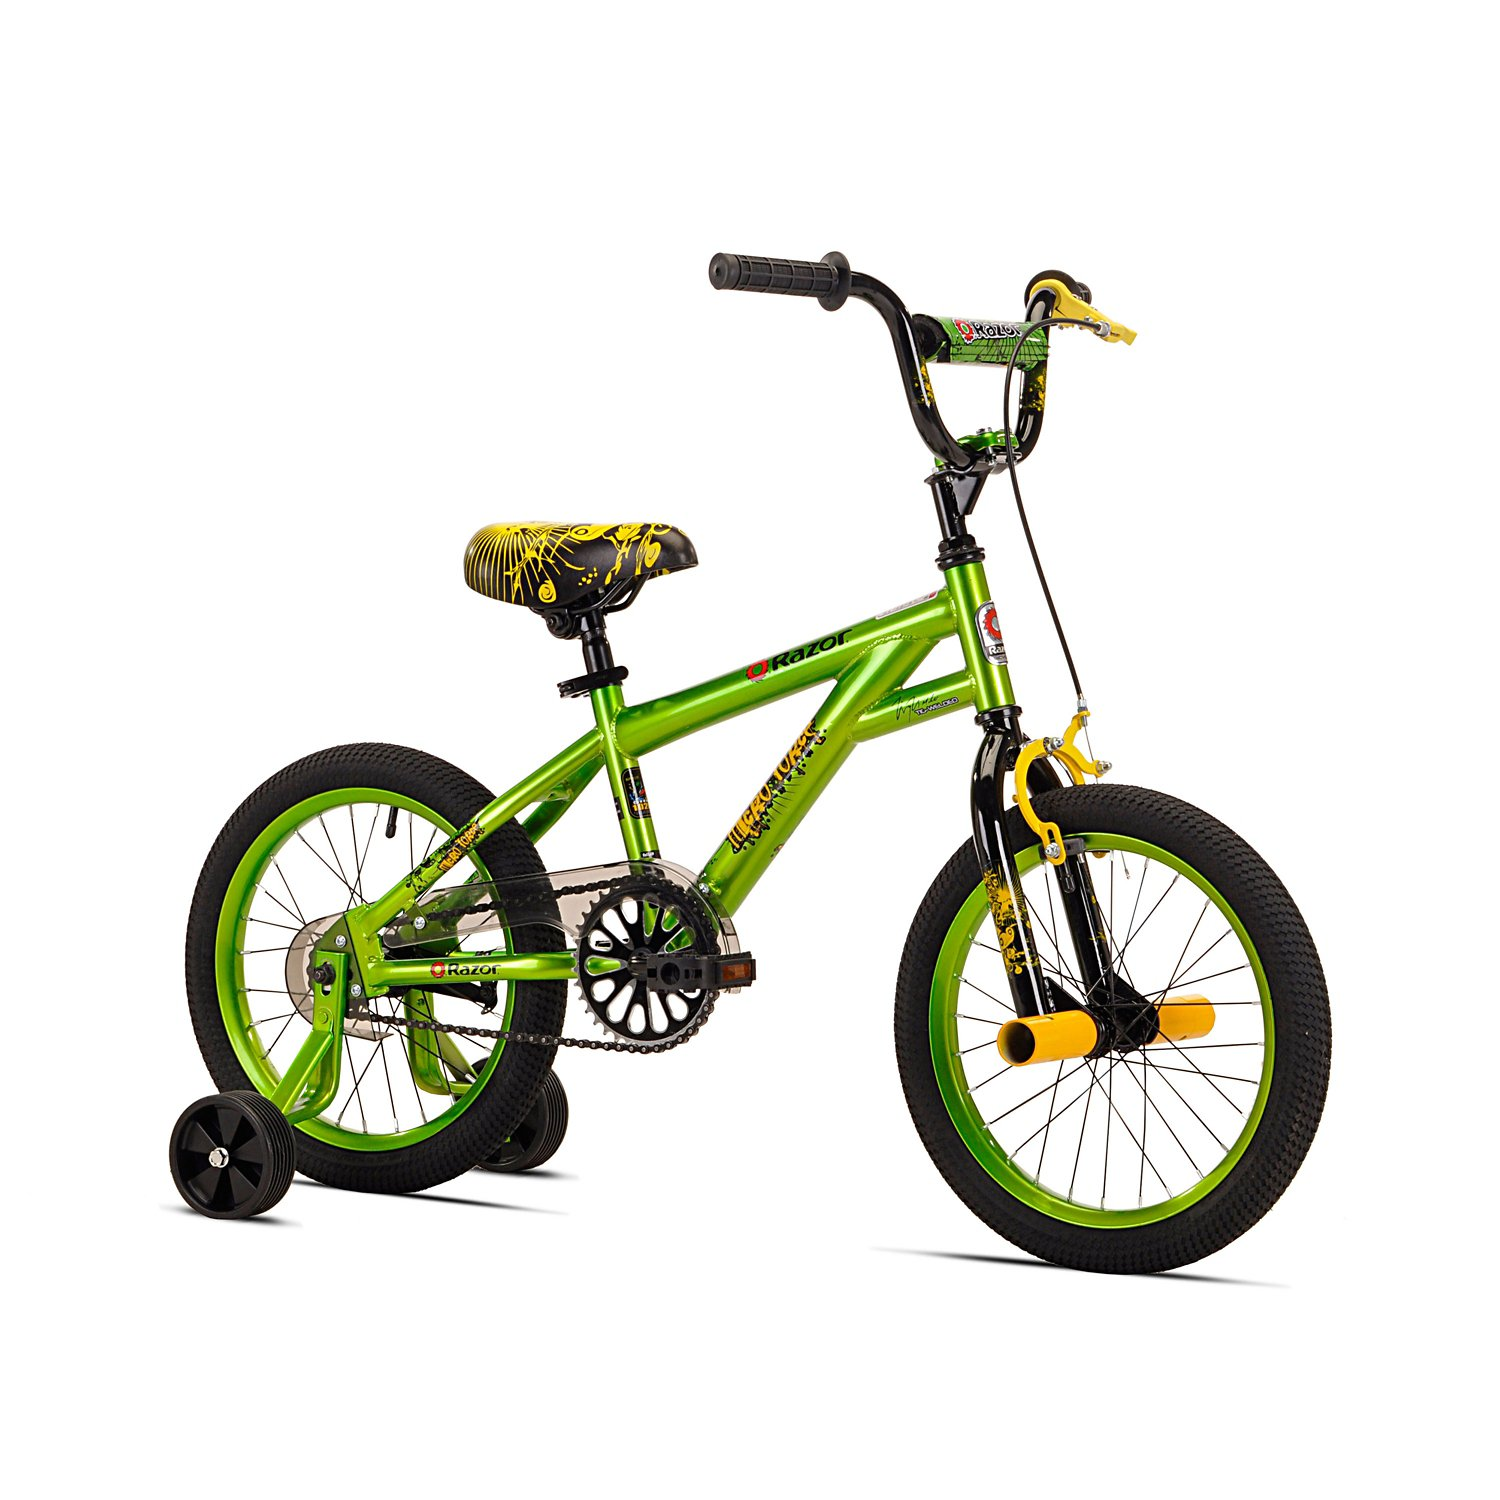 53f151018bb4 Display product reviews for KENT Boys  Razor Micro Force 16 in Bicycle